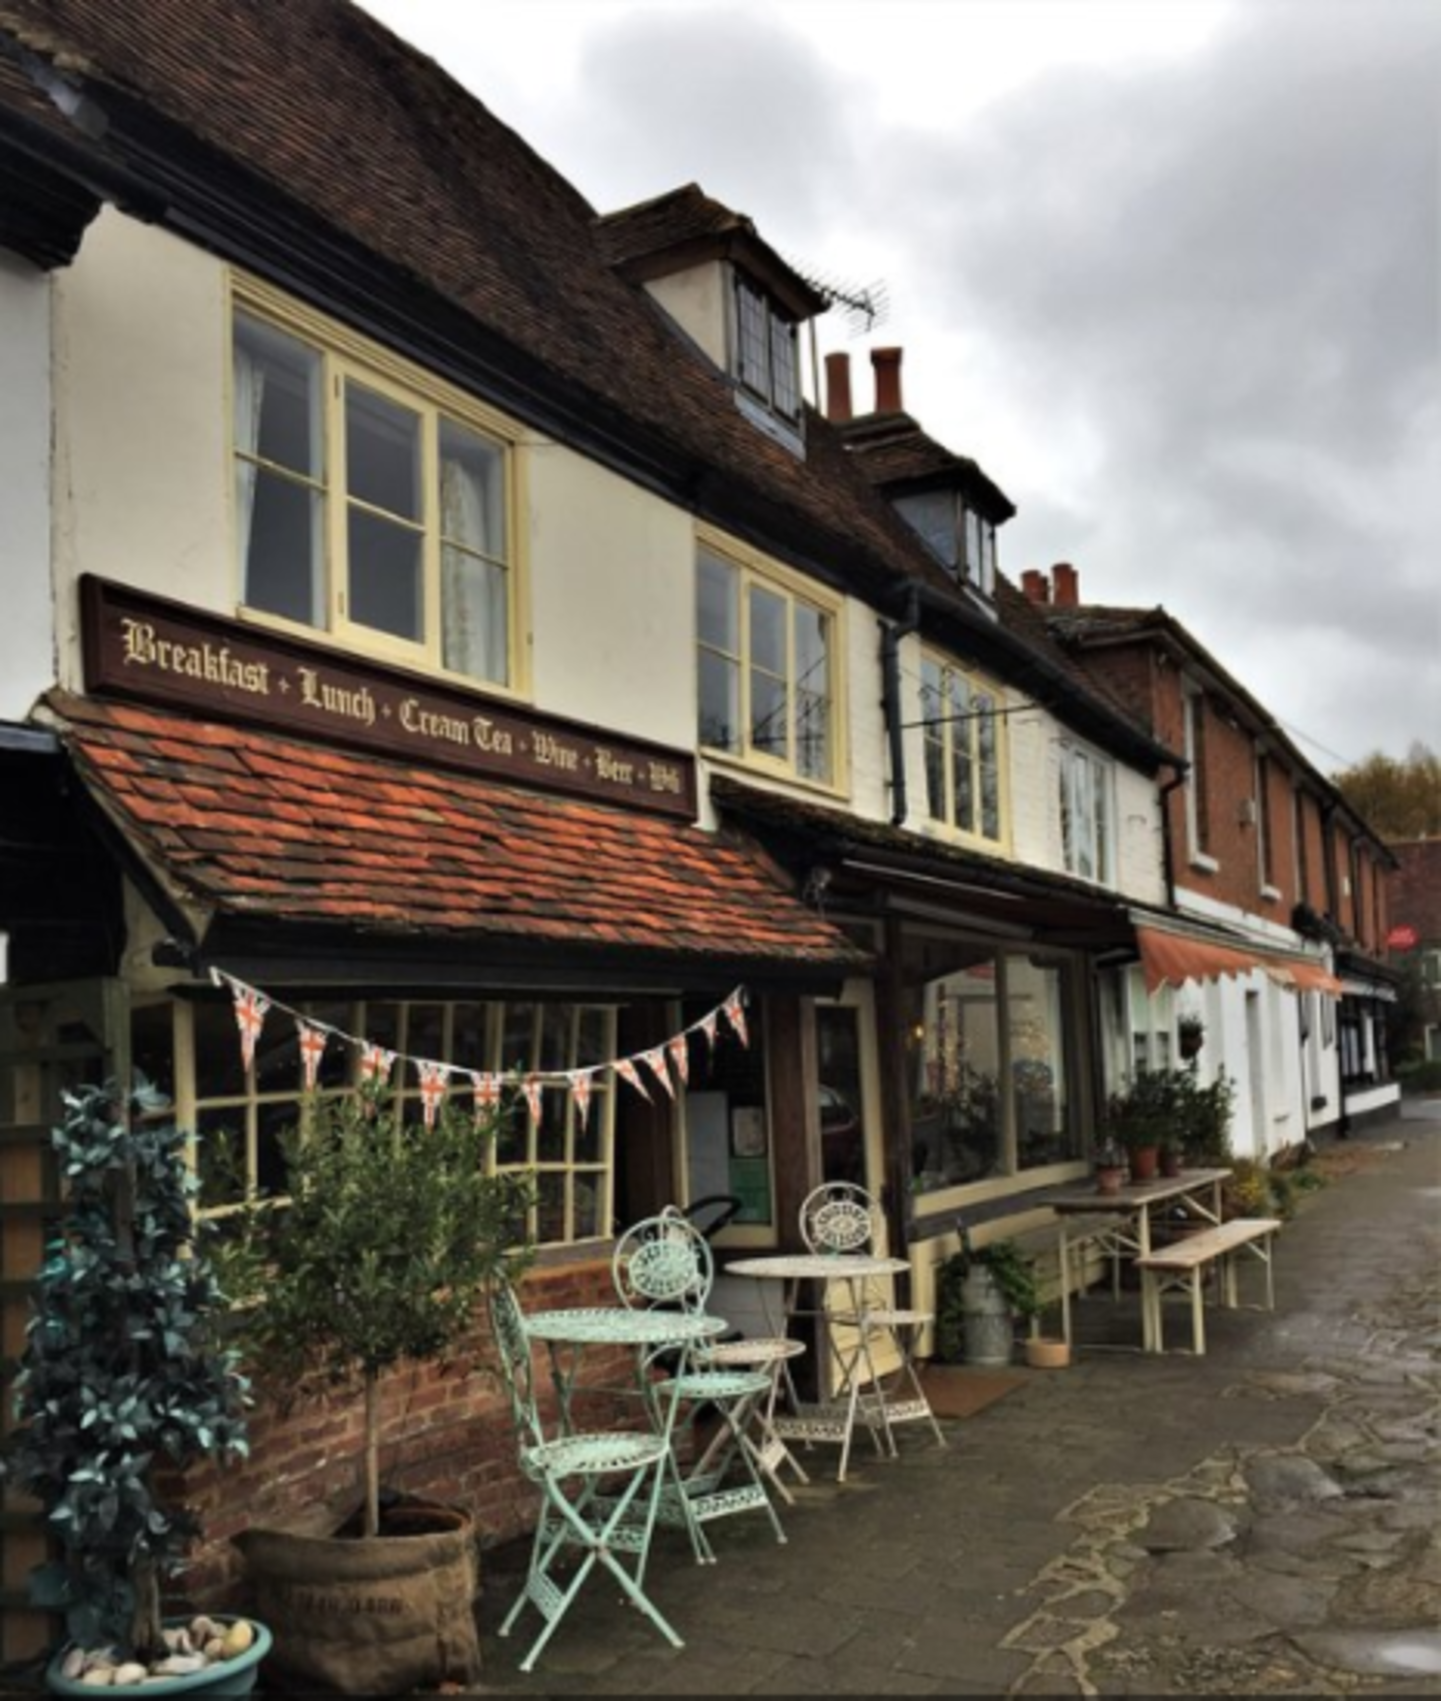 A store in a brick building at Biddenden Bed and Breakfast.